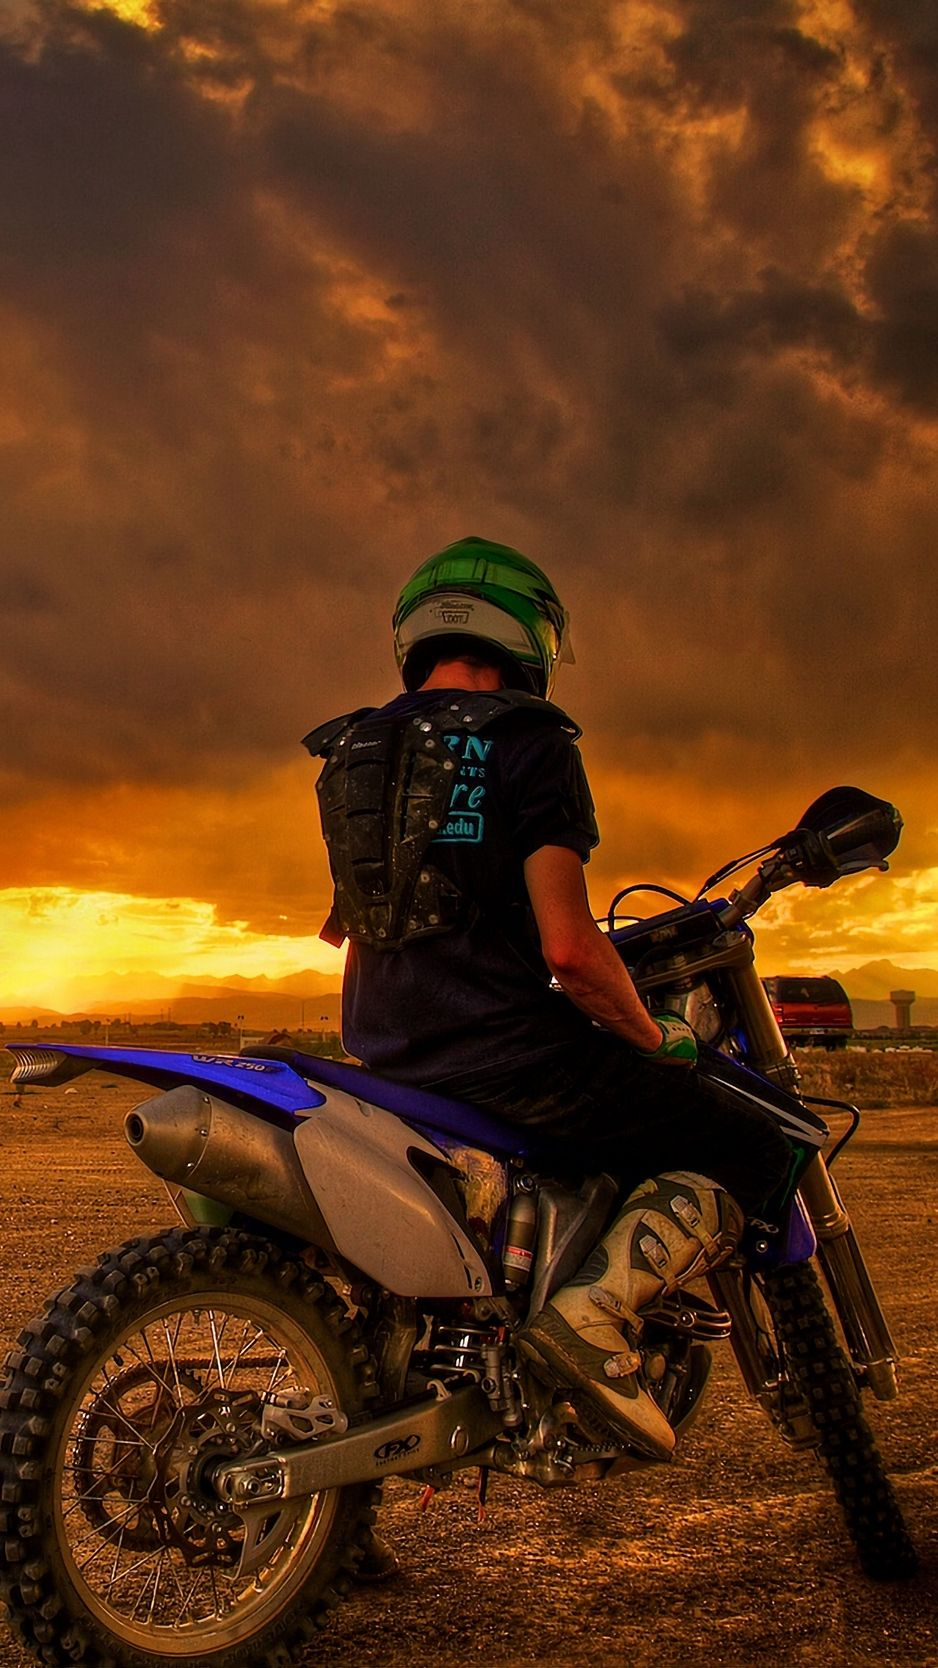 Motorcyclist motorcycle sunset wallpaper background